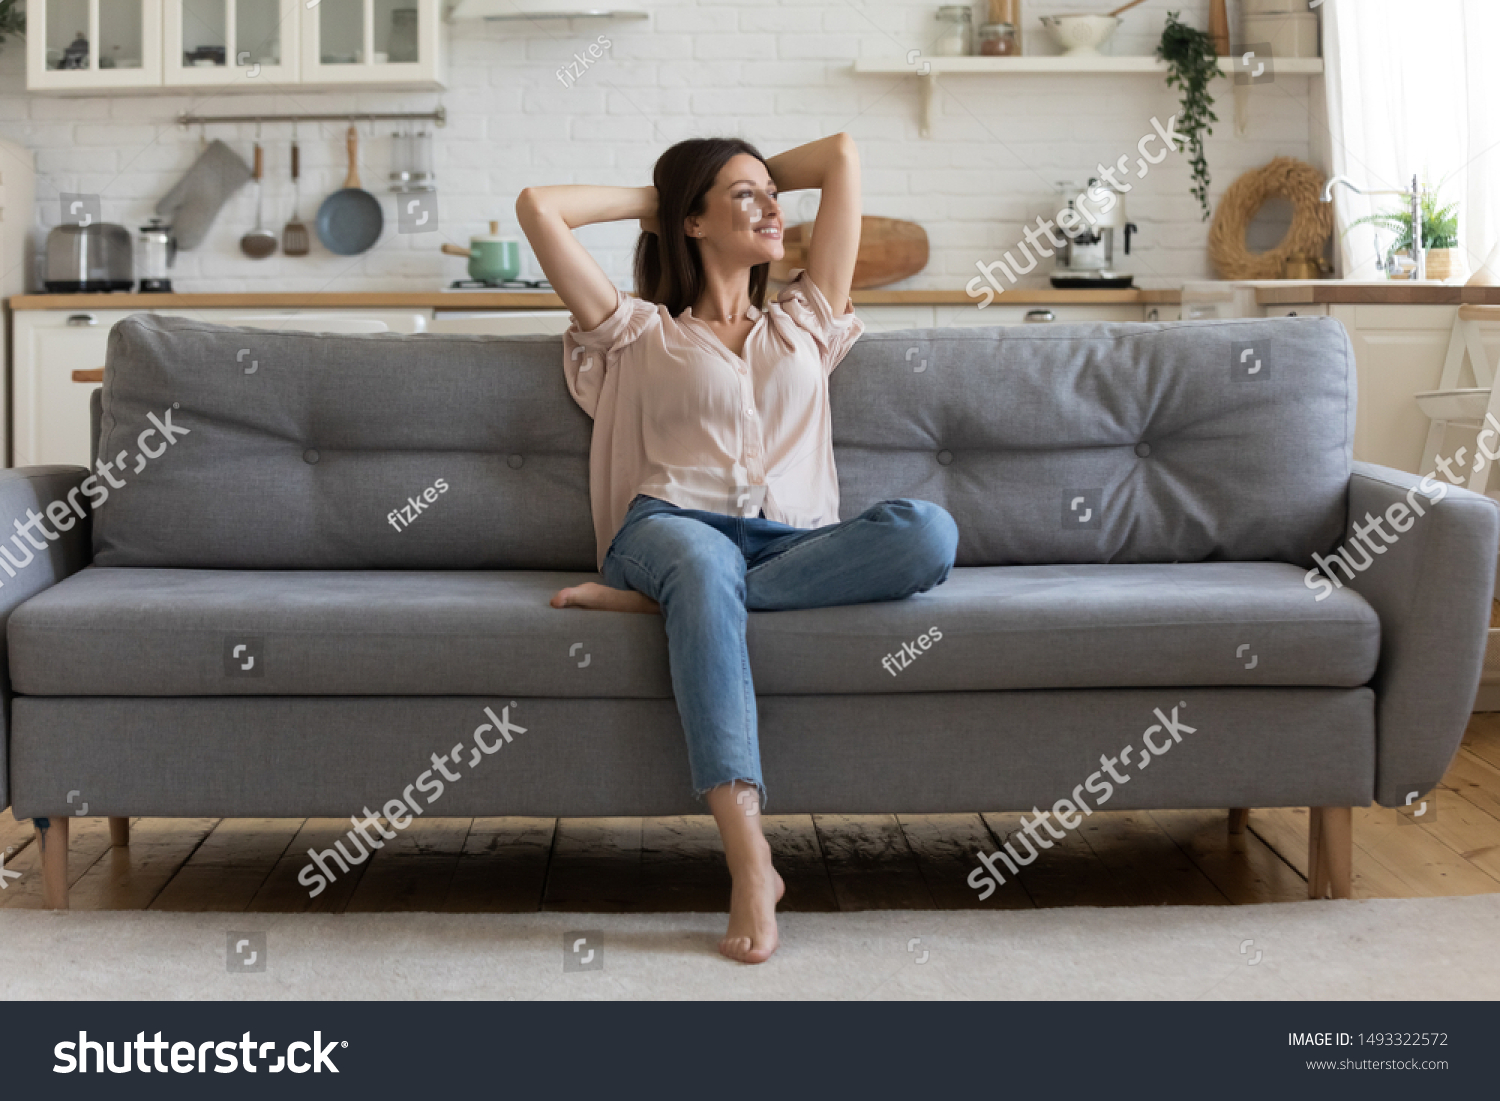 In cozy living room happy woman put hands behind head sitting leaned on couch 30s european female enjoy lazy weekend or vacation, housewife relaxing feels satisfied accomplish chores housework concept #1493322572